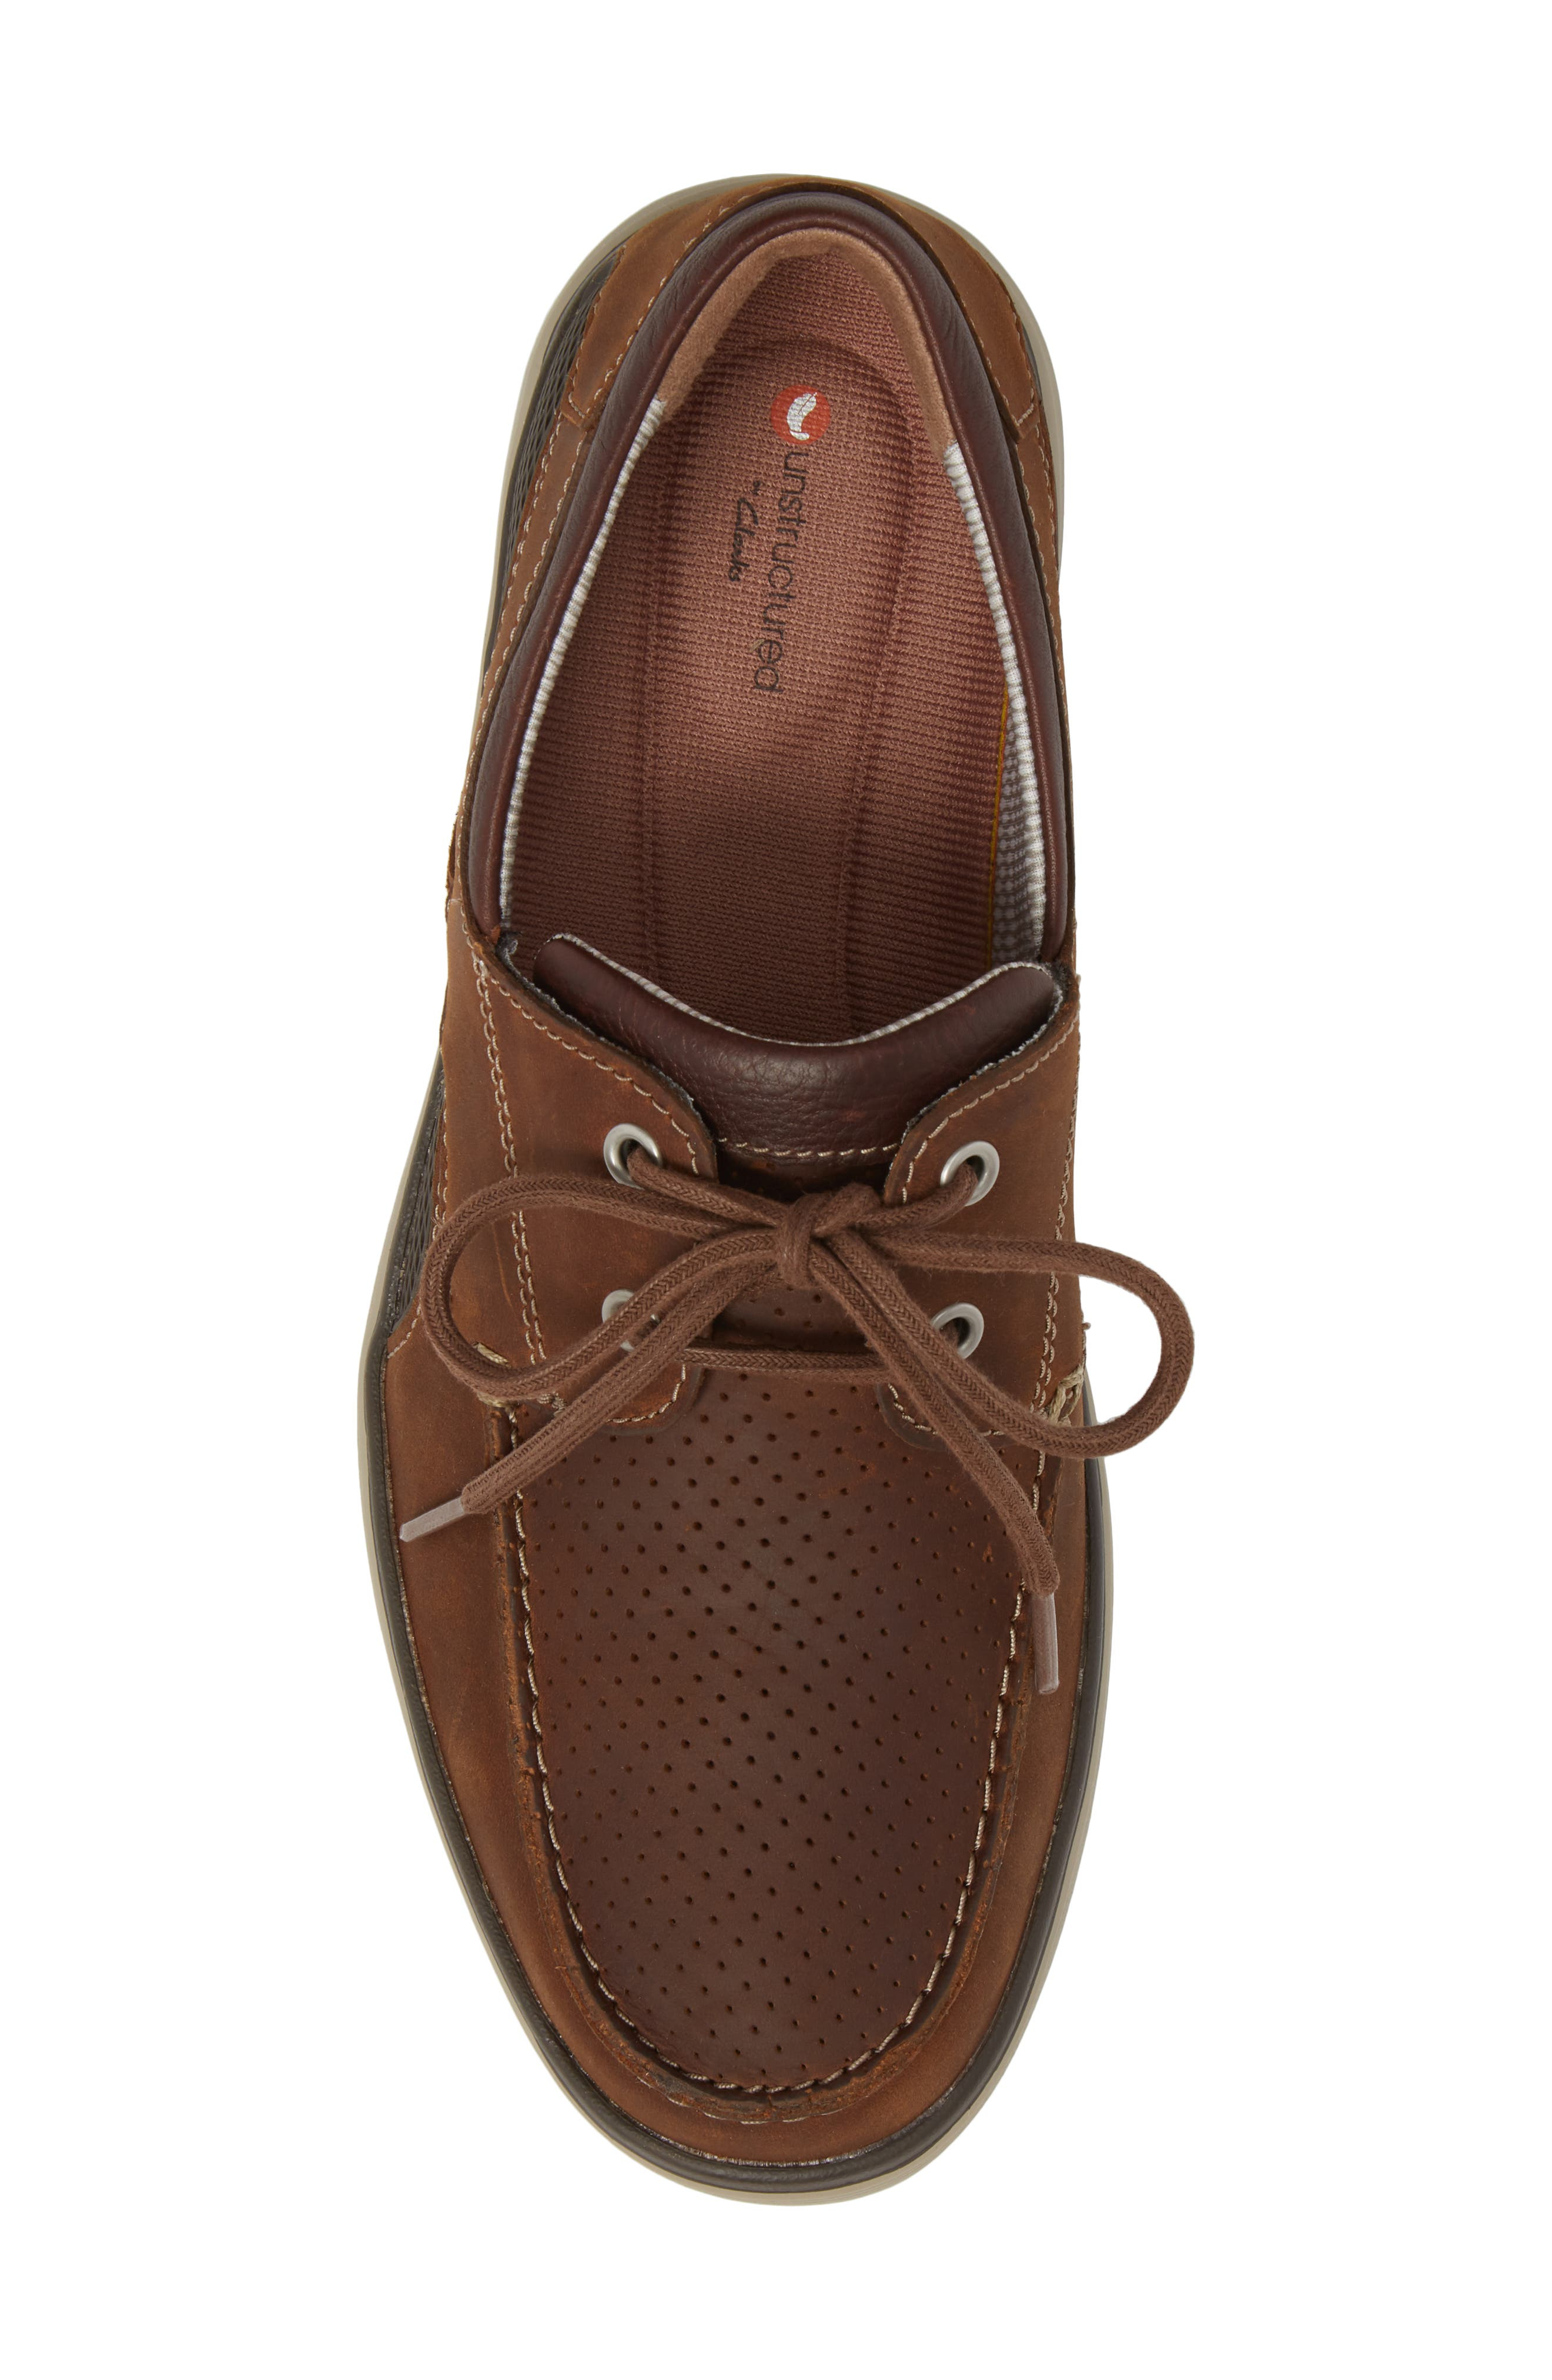 Clarks<sup>®</sup> Unabobe Step Boat Shoe,                             Alternate thumbnail 5, color,                             DARK TAN LEATHER